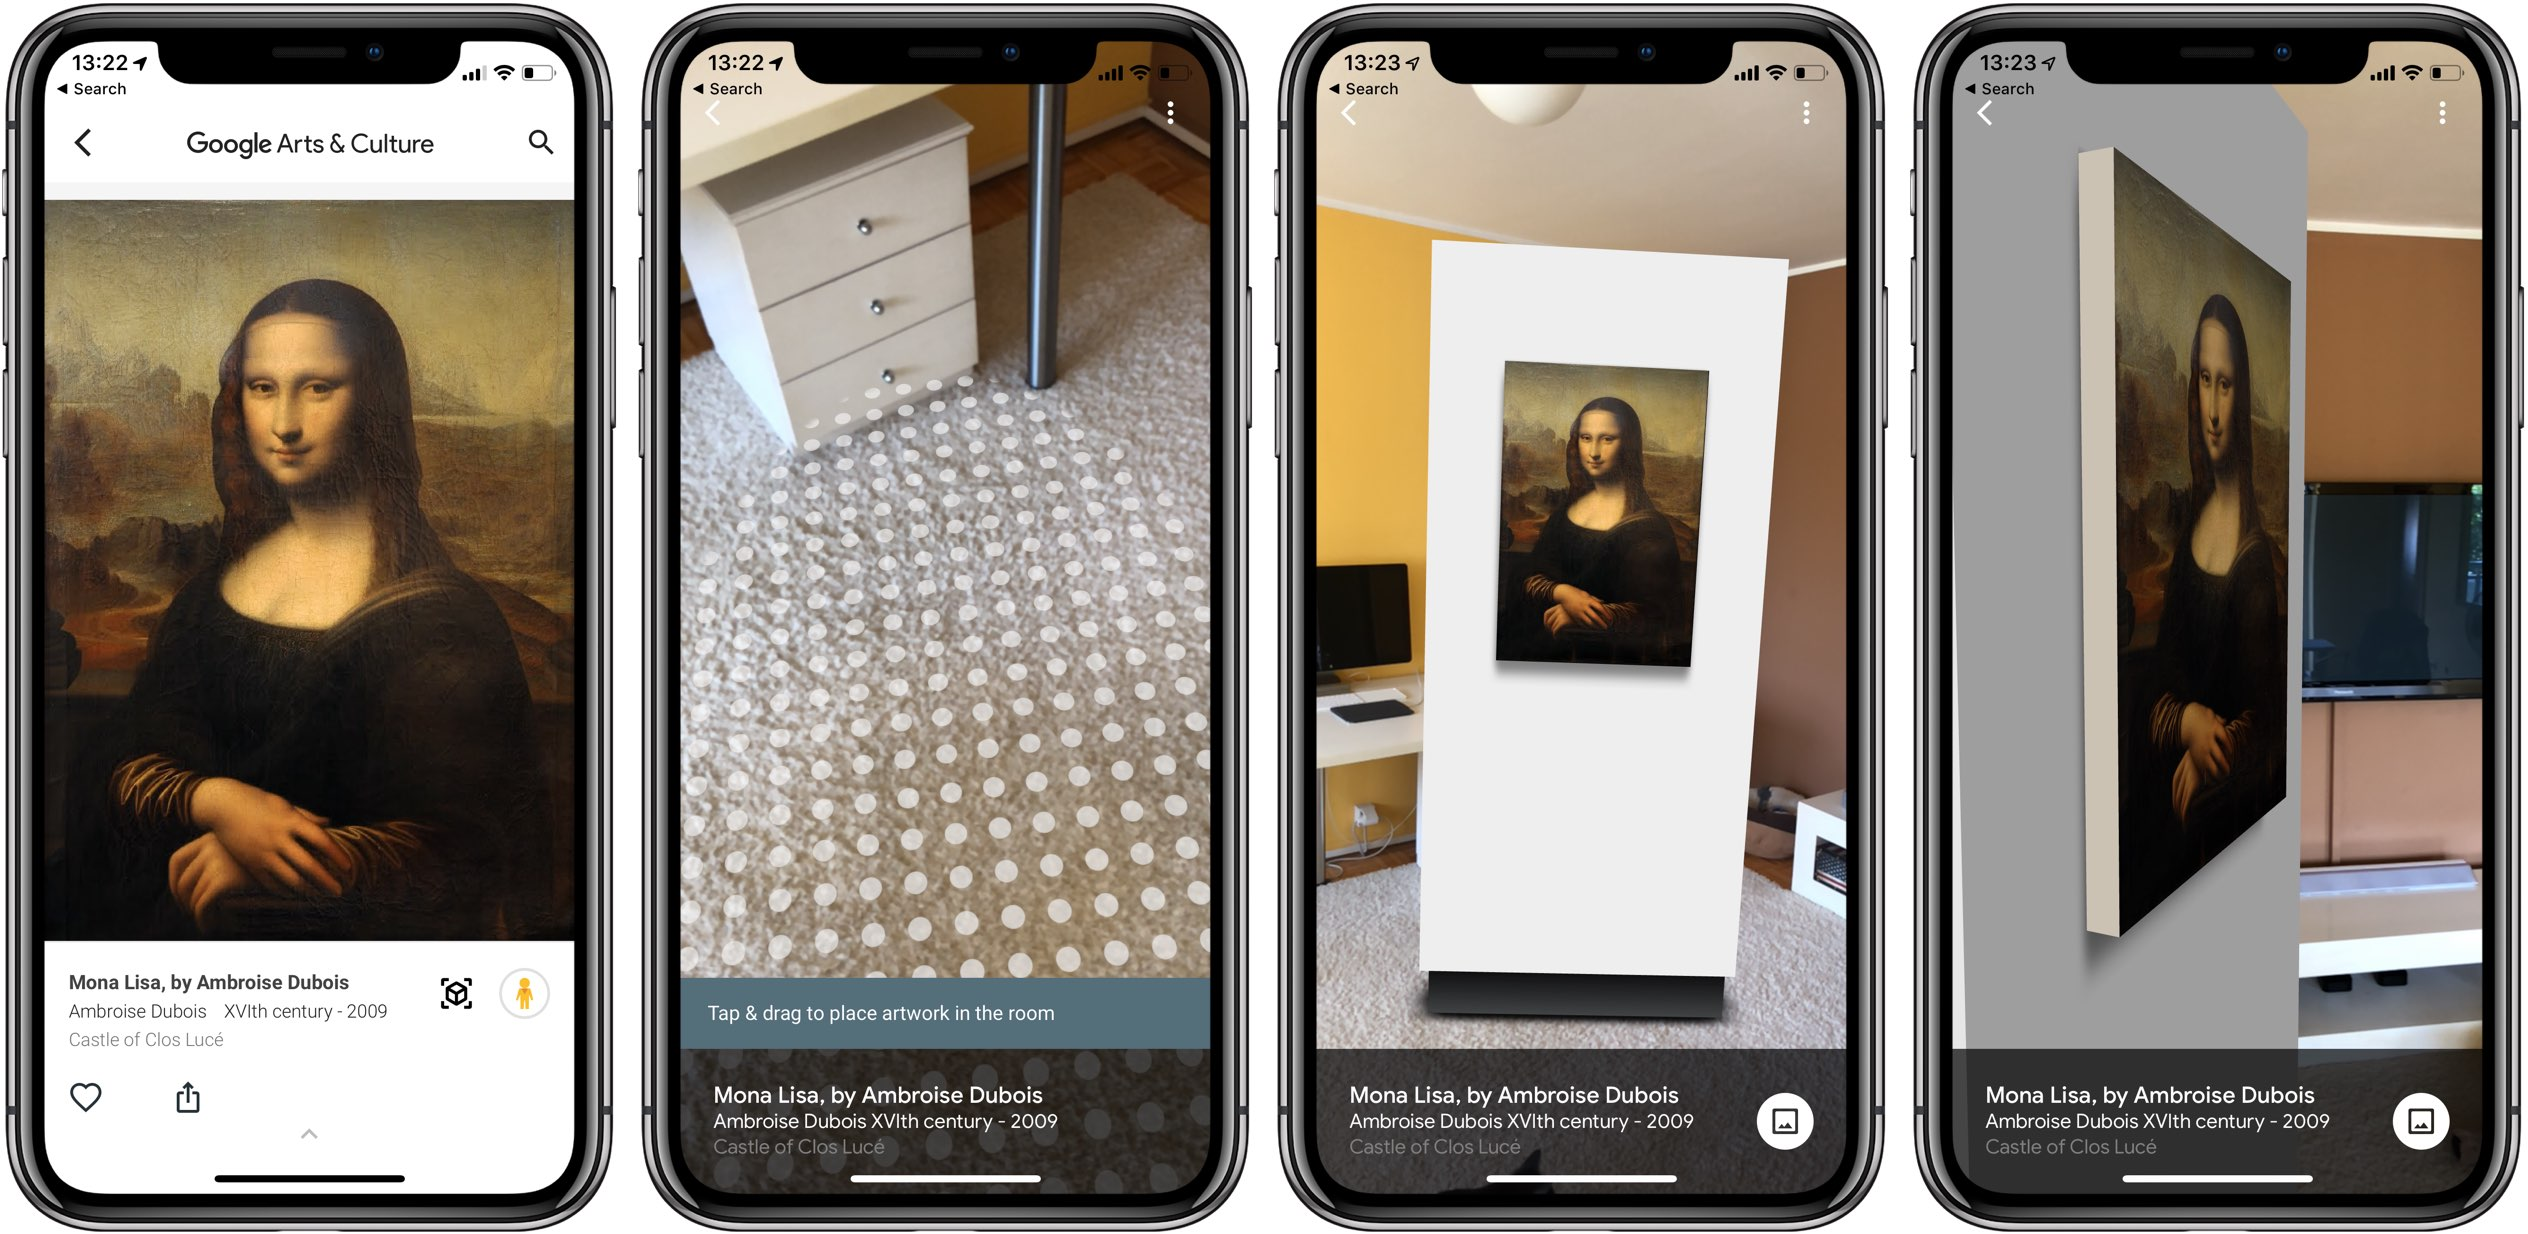 Google's updated Arts & Culture app now lets you explore real-size paintings and artworks in augmented reality